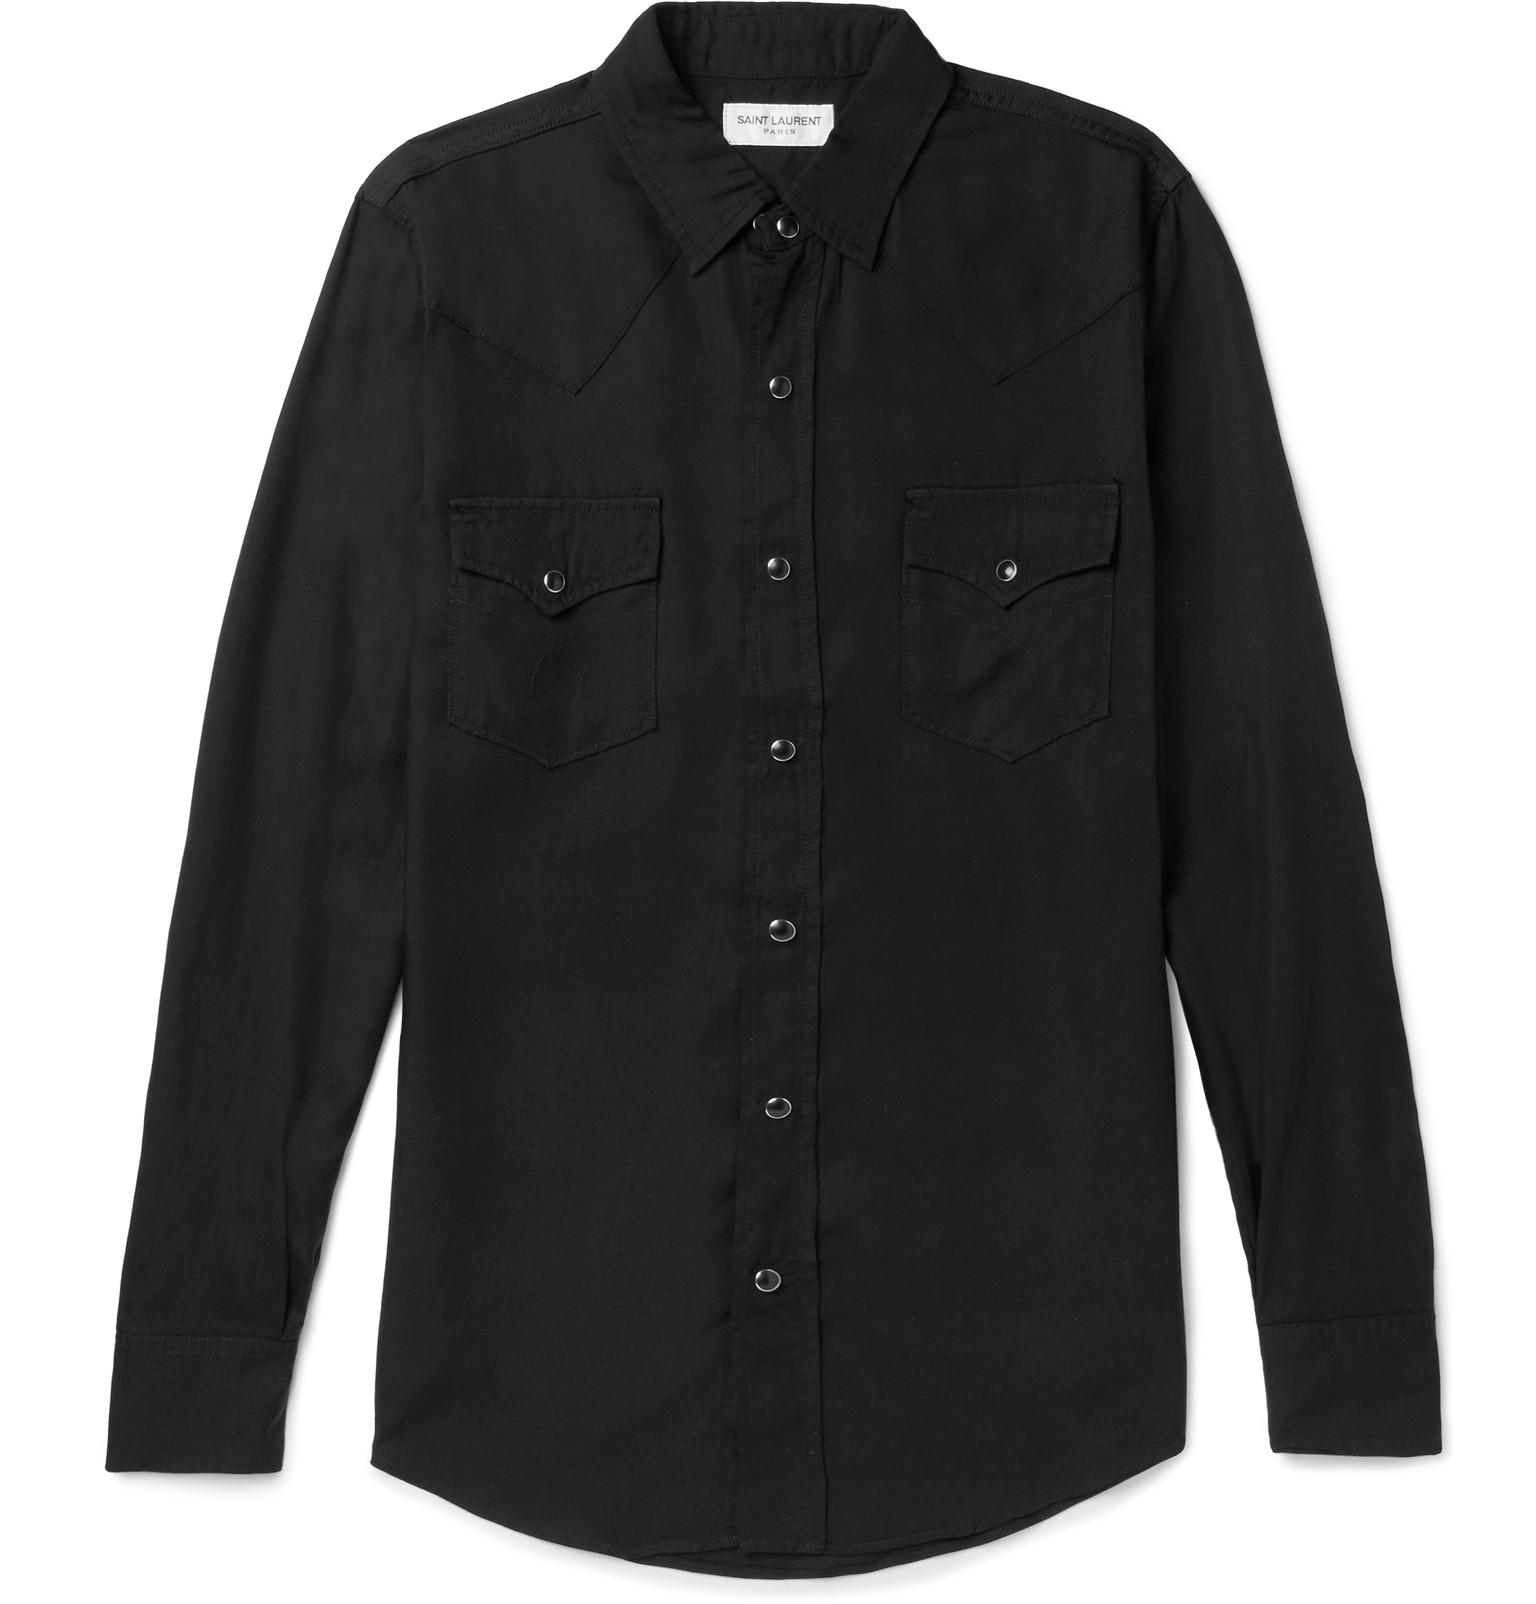 cec46b276a9 Saint Laurent Ysl 70s Western Shirt In Black Rinse Lyocell Twill in ...